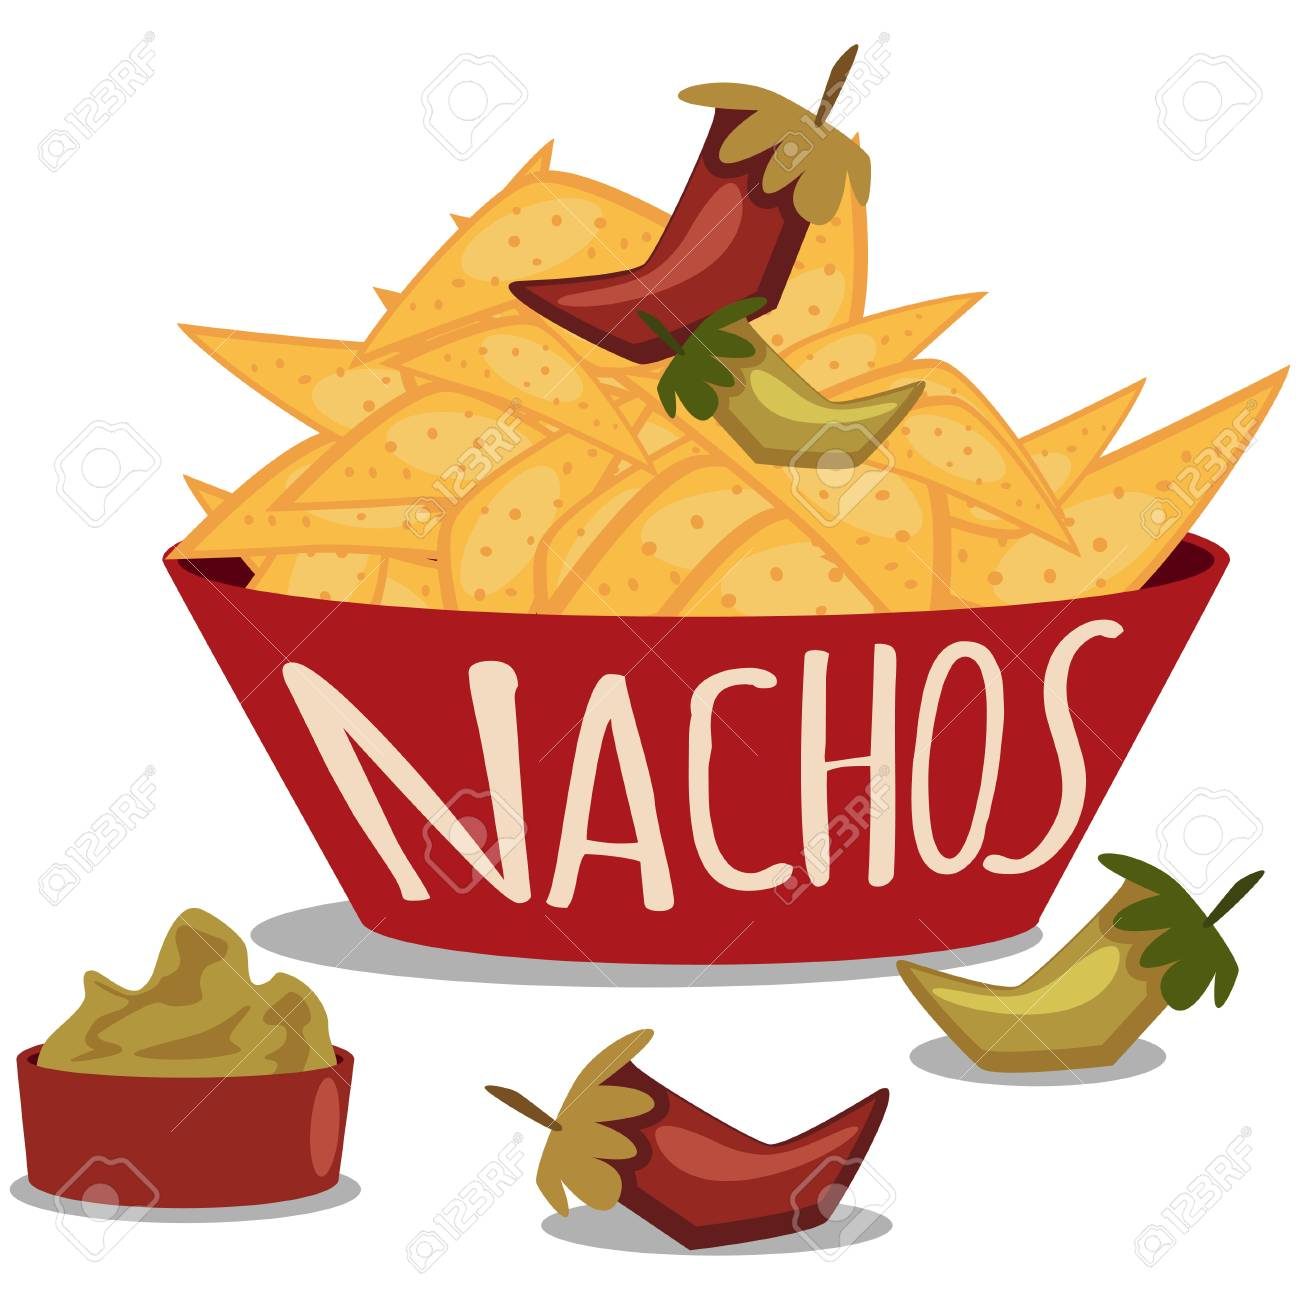 Nachos with guacamole sauce and chili pepper. Mexican traditional food. Plate of tortilla chips. Vector cartoon illustration isolated on white background. - 101087327